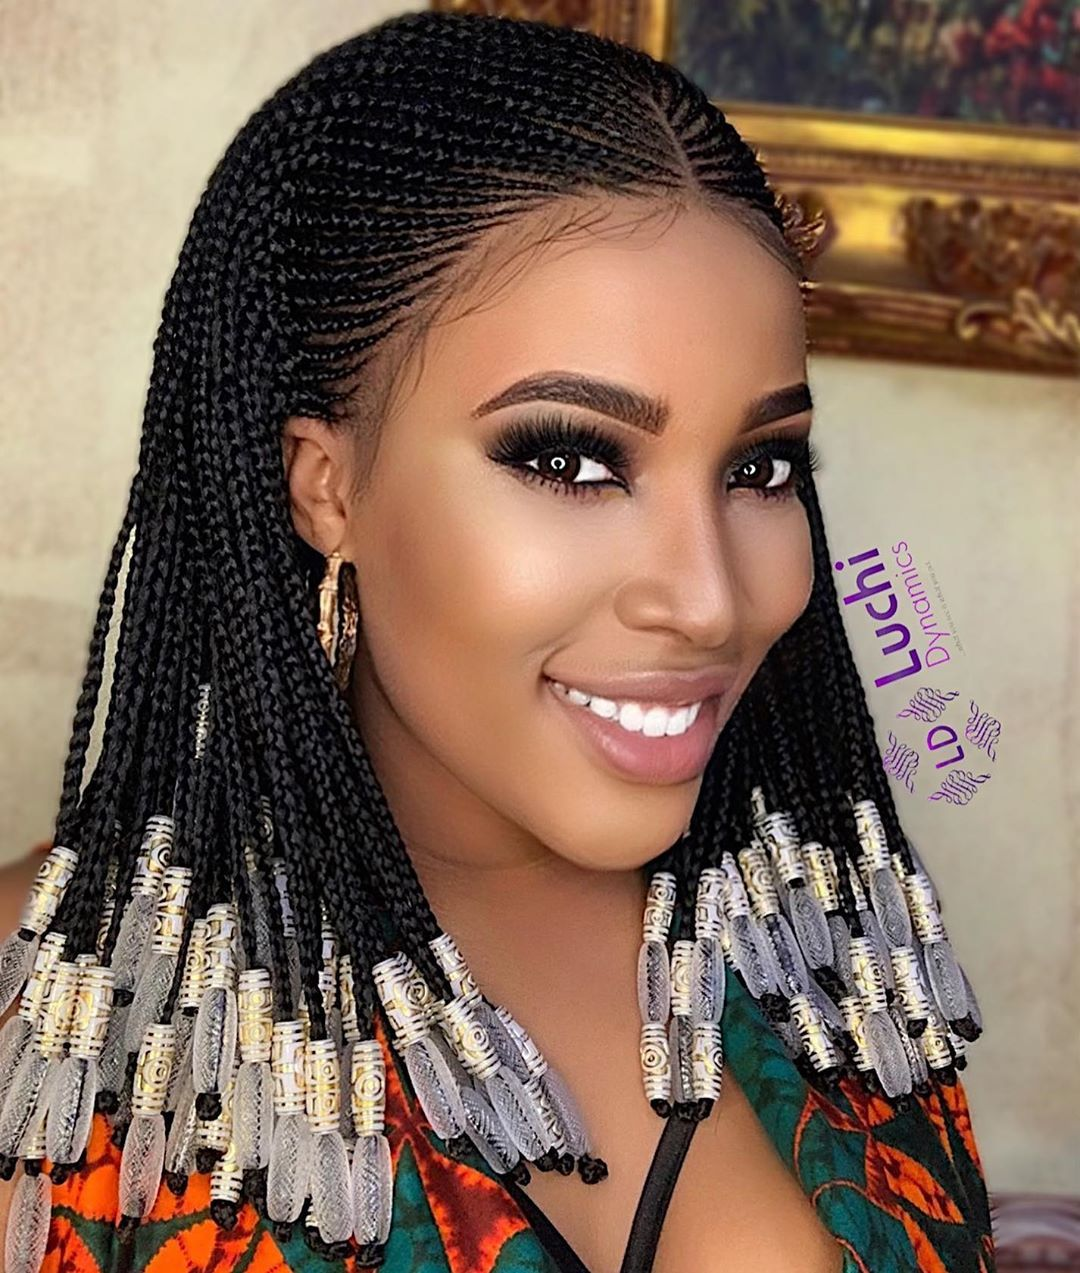 The Braid Wig Boss S Instagram Photo Let S Throw It Back To One Of Our Favor Cornrows Braids For Black Women Short Box Braids Hairstyles Braids Wig